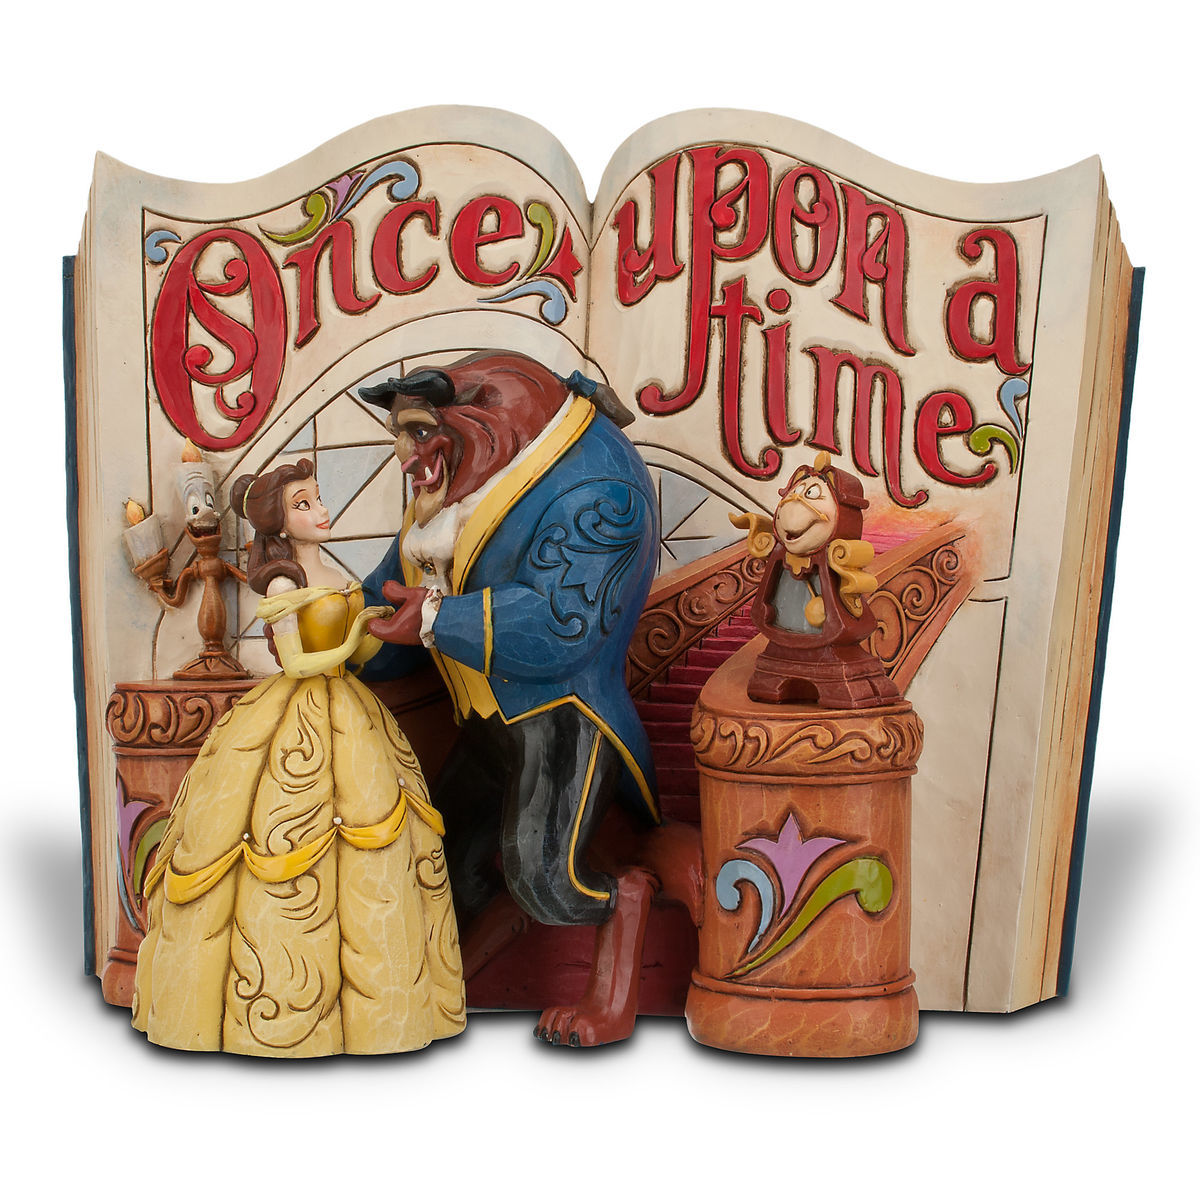 beauty and the beast story book figurine by jim shore shopdisney